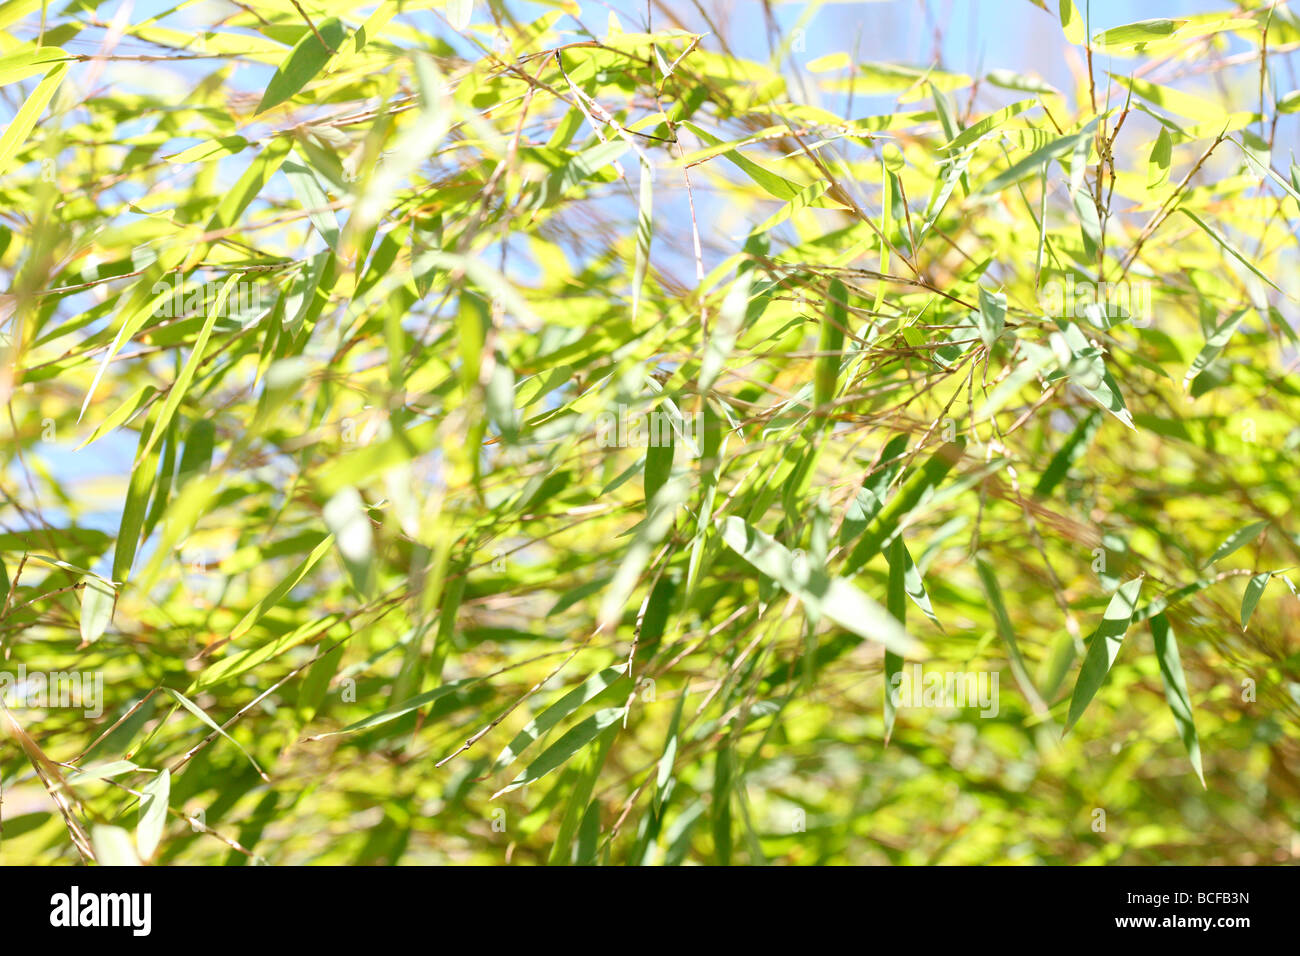 free flowing bamboo plants with beautiful lime coloured leaves Jane Ann Butler Photography JABP435 - Stock Image